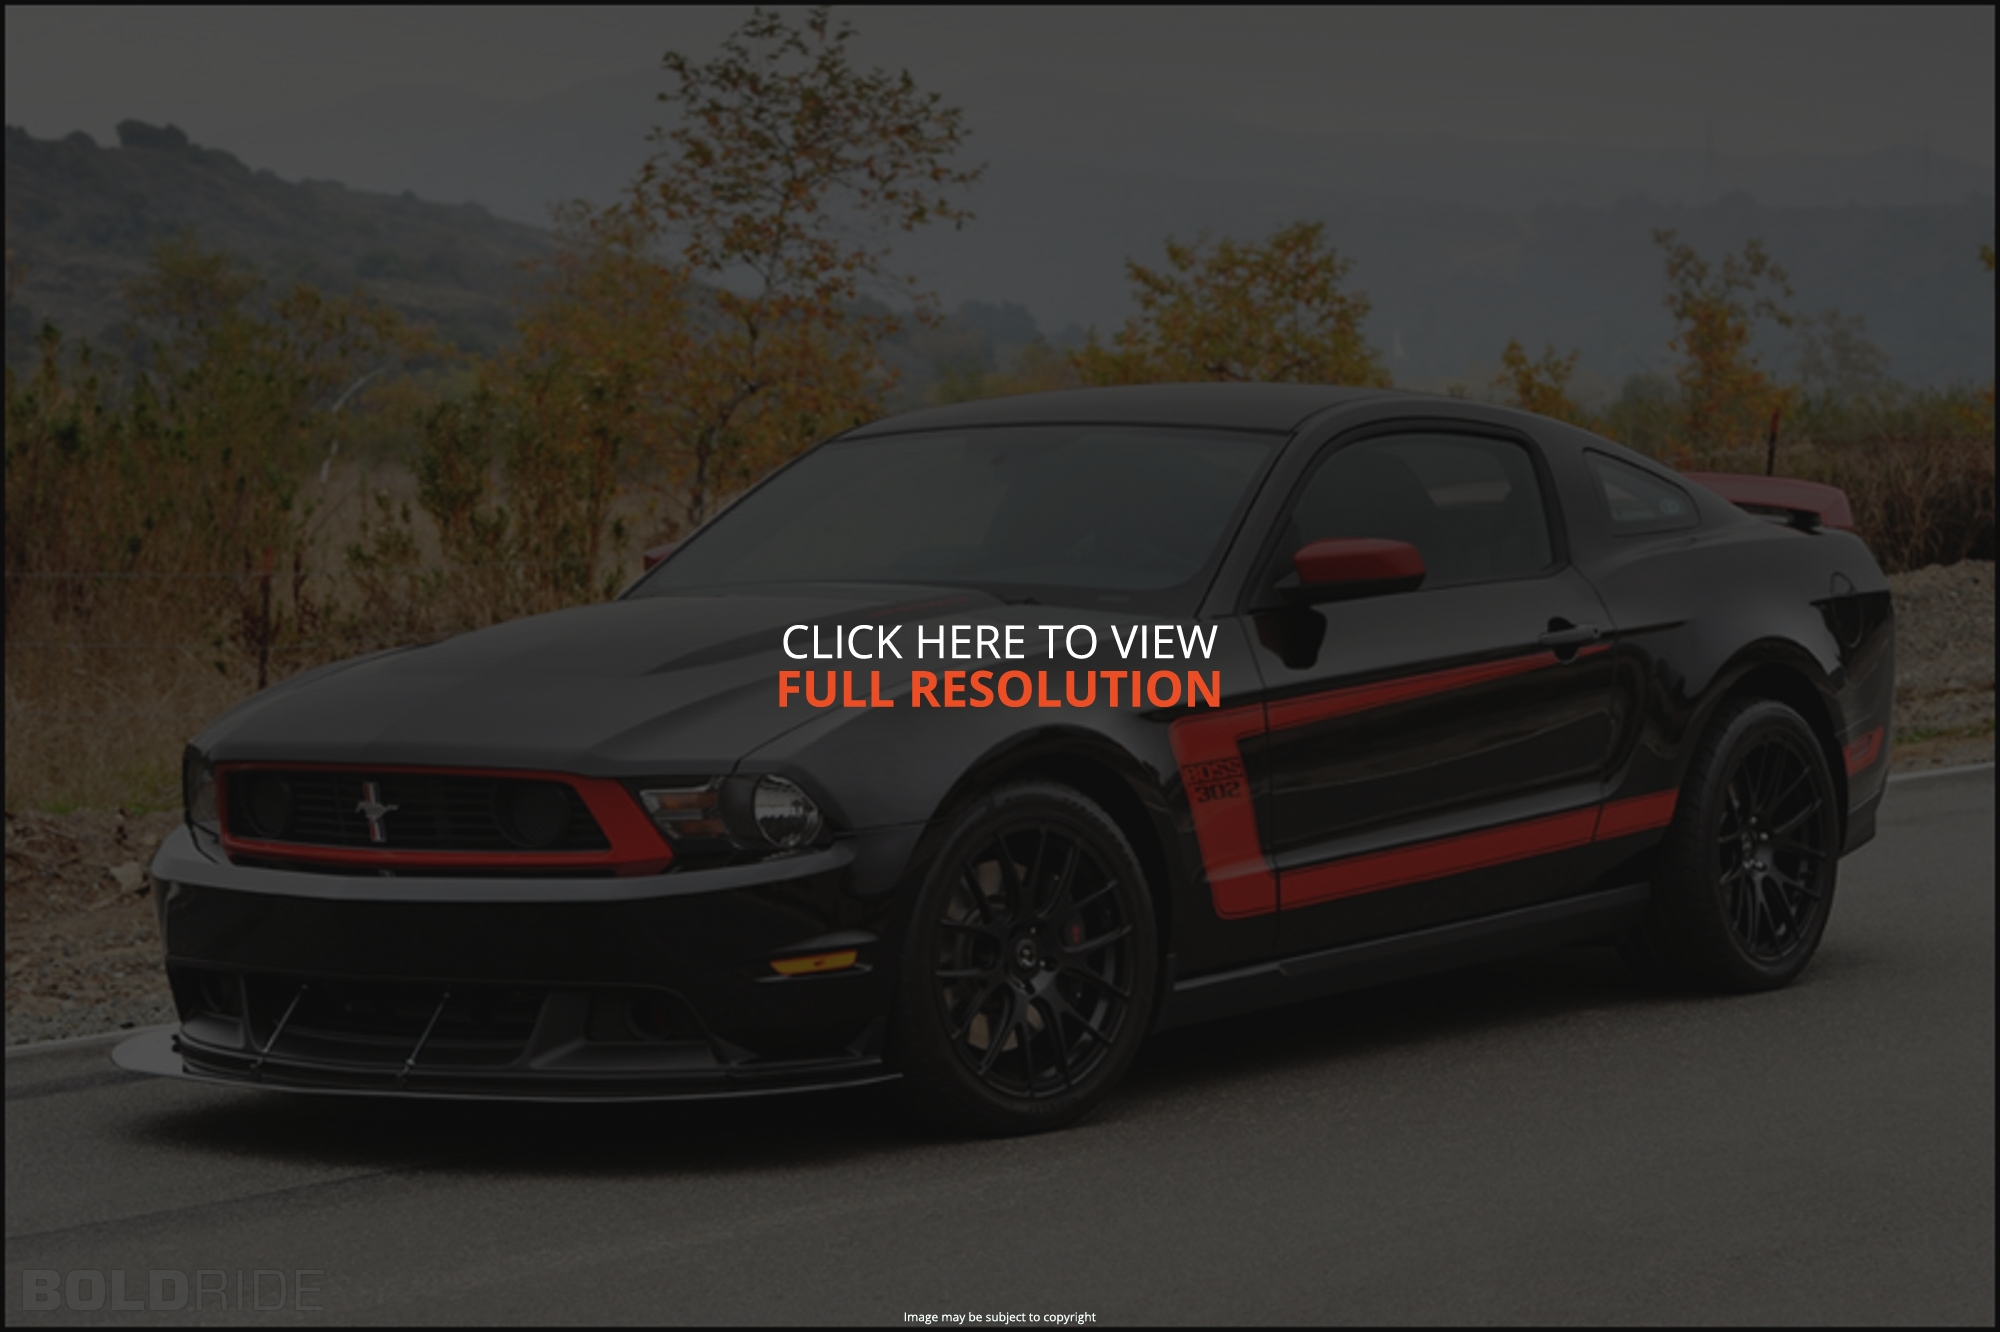 Ford Mustang Boss 302 #18